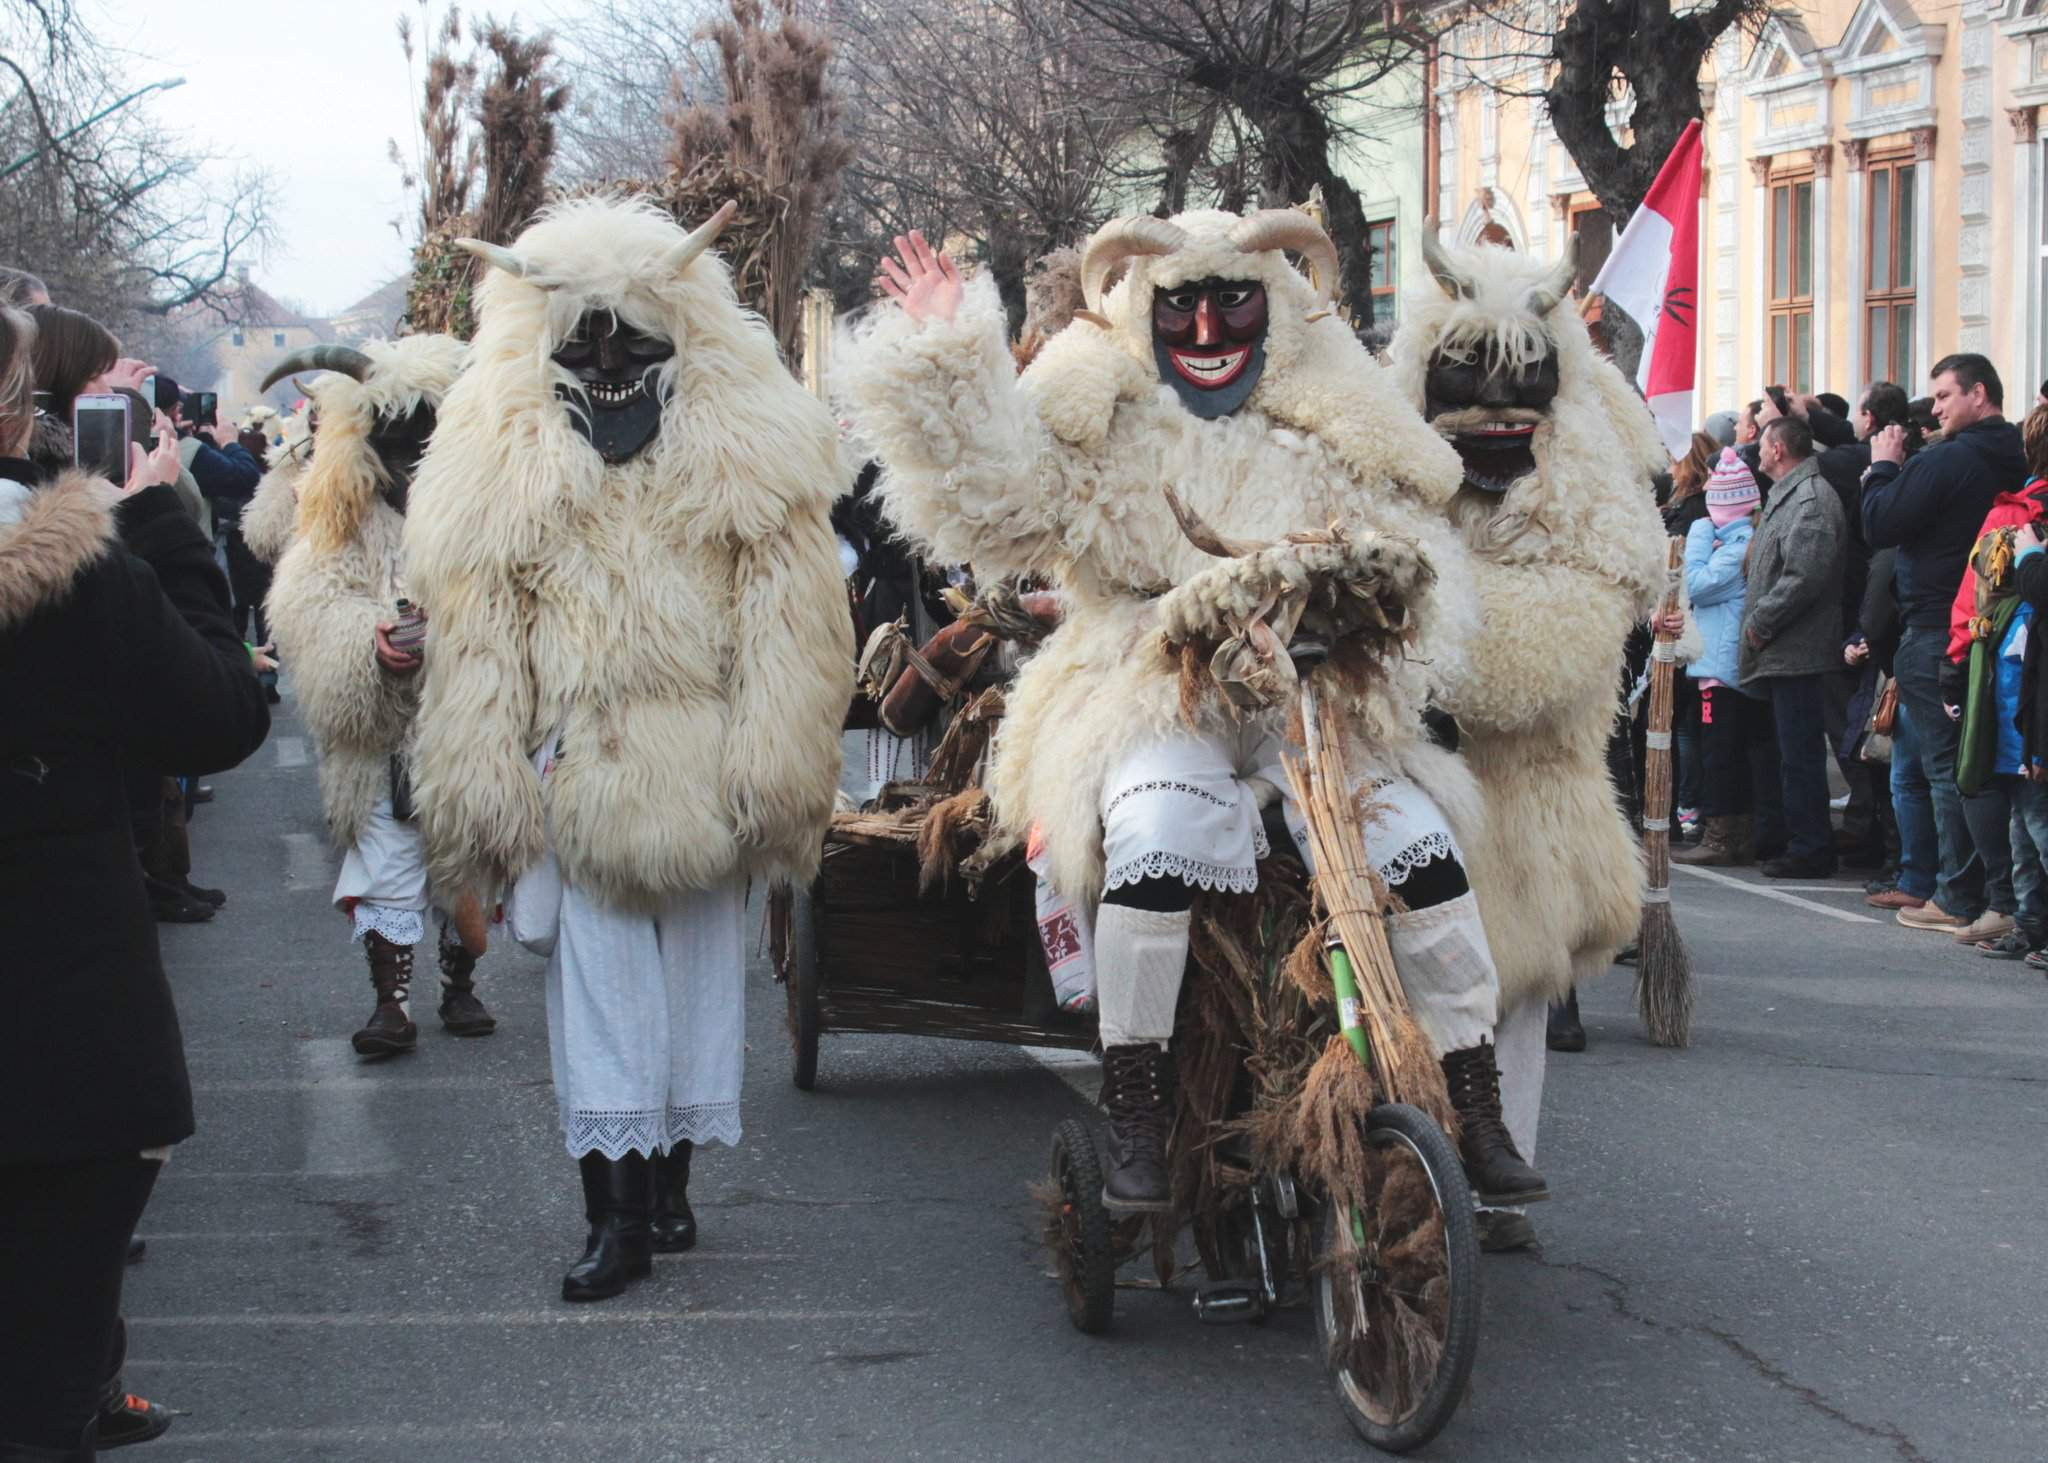 Busójárás starts today – thousands dress up in masquerade to drive away winter